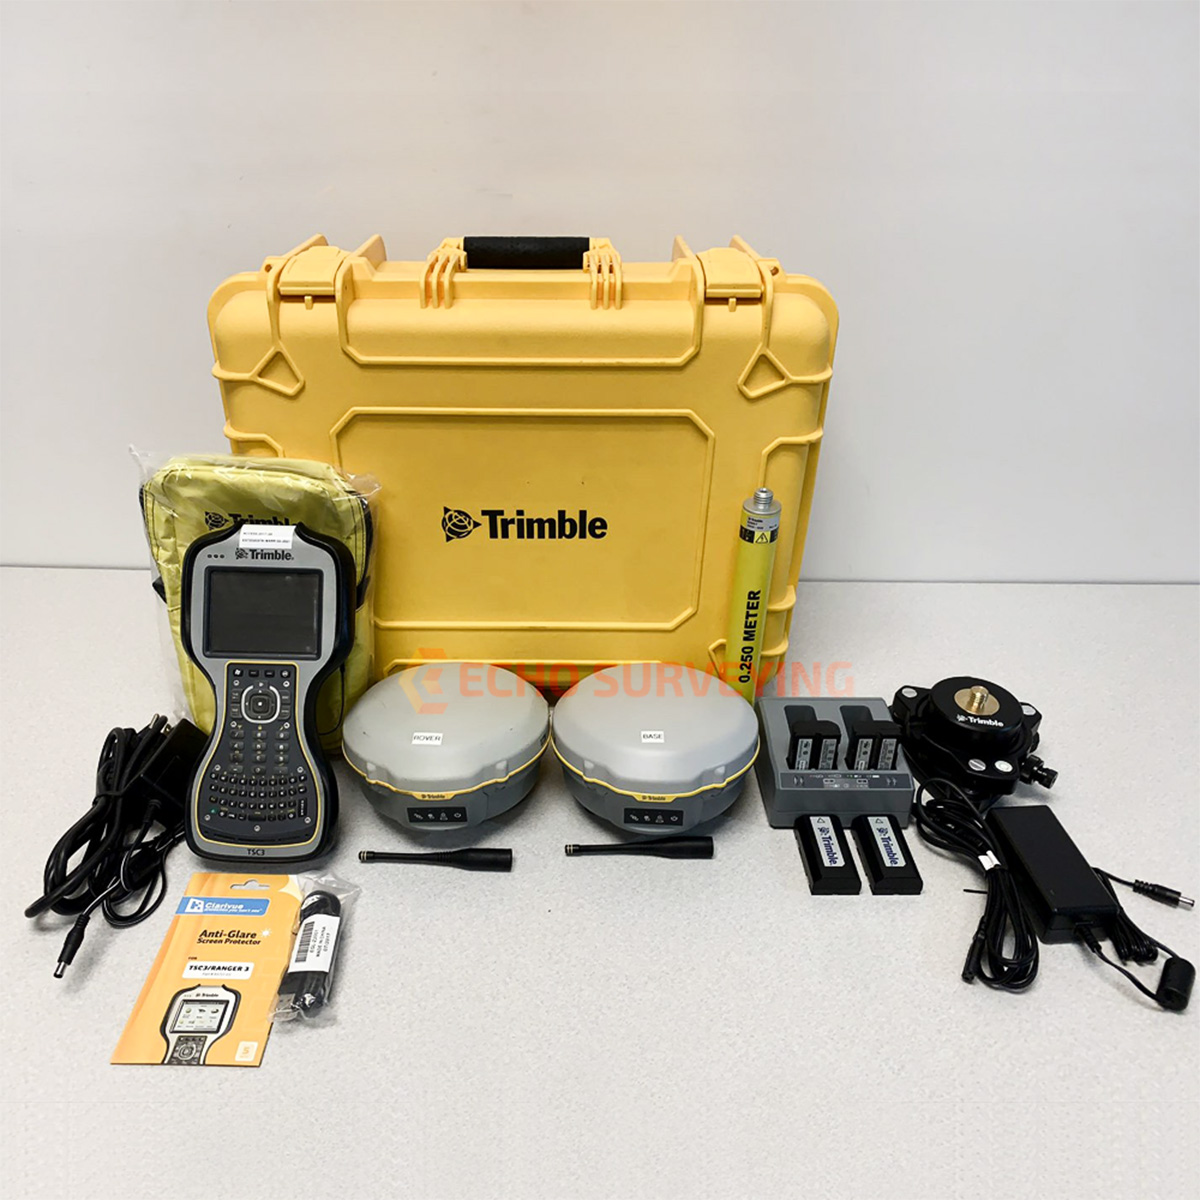 Trimble-R8s-Base-Rover-System-with-TSC3.jpg